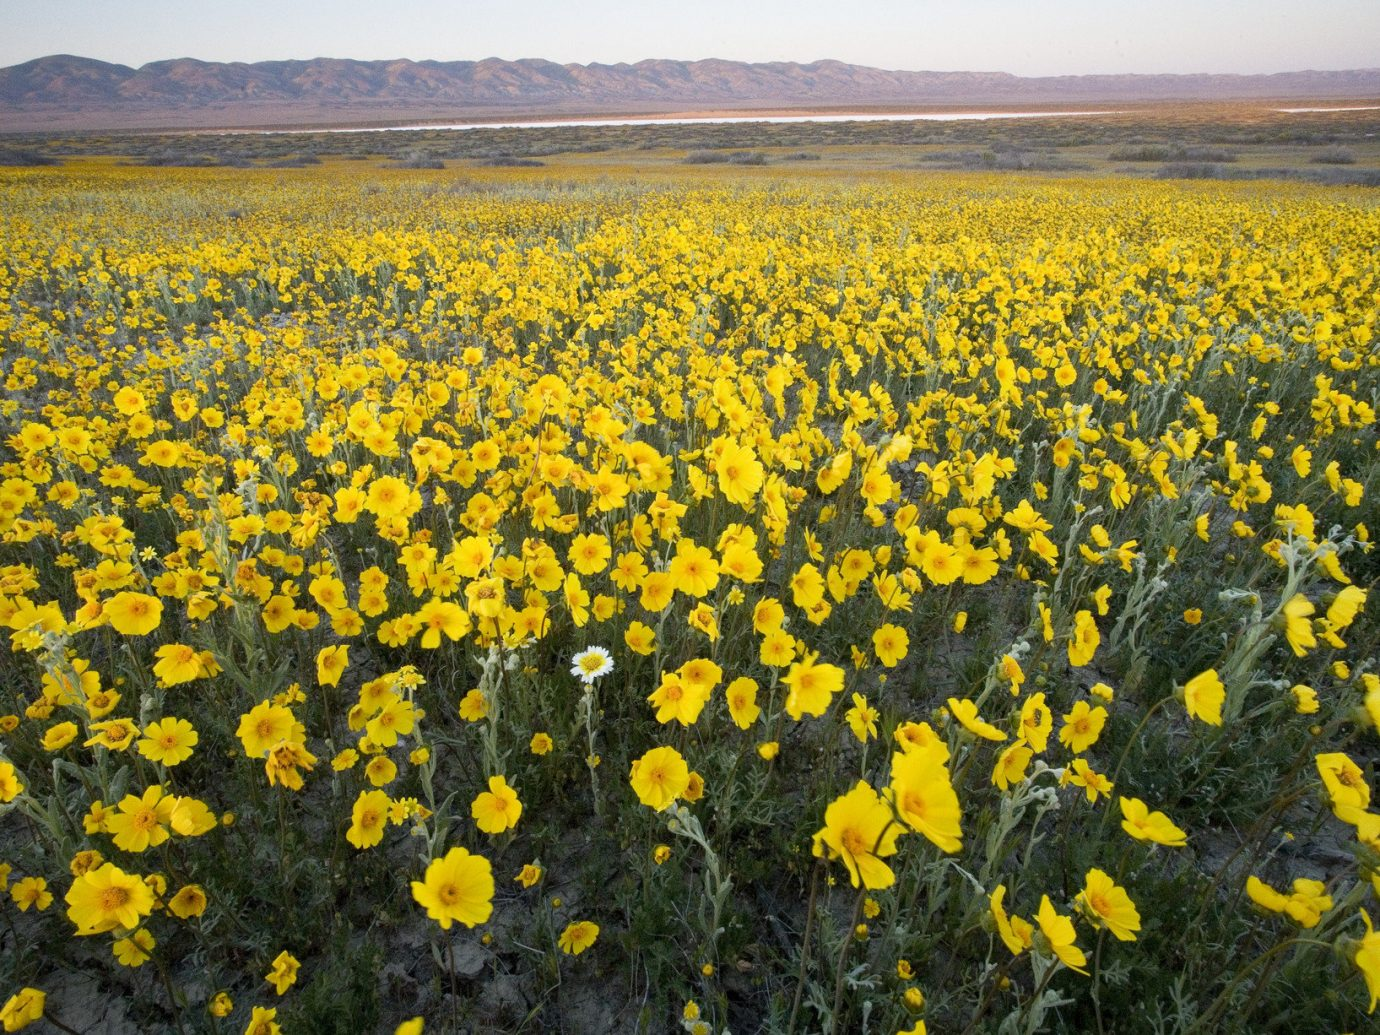 Offbeat flower habitat outdoor field plant yellow natural environment grassland ecosystem flora plain prairie meadow mountain land plant sunflower wildflower flowering plant rapeseed daisy family brassica steppe plateau